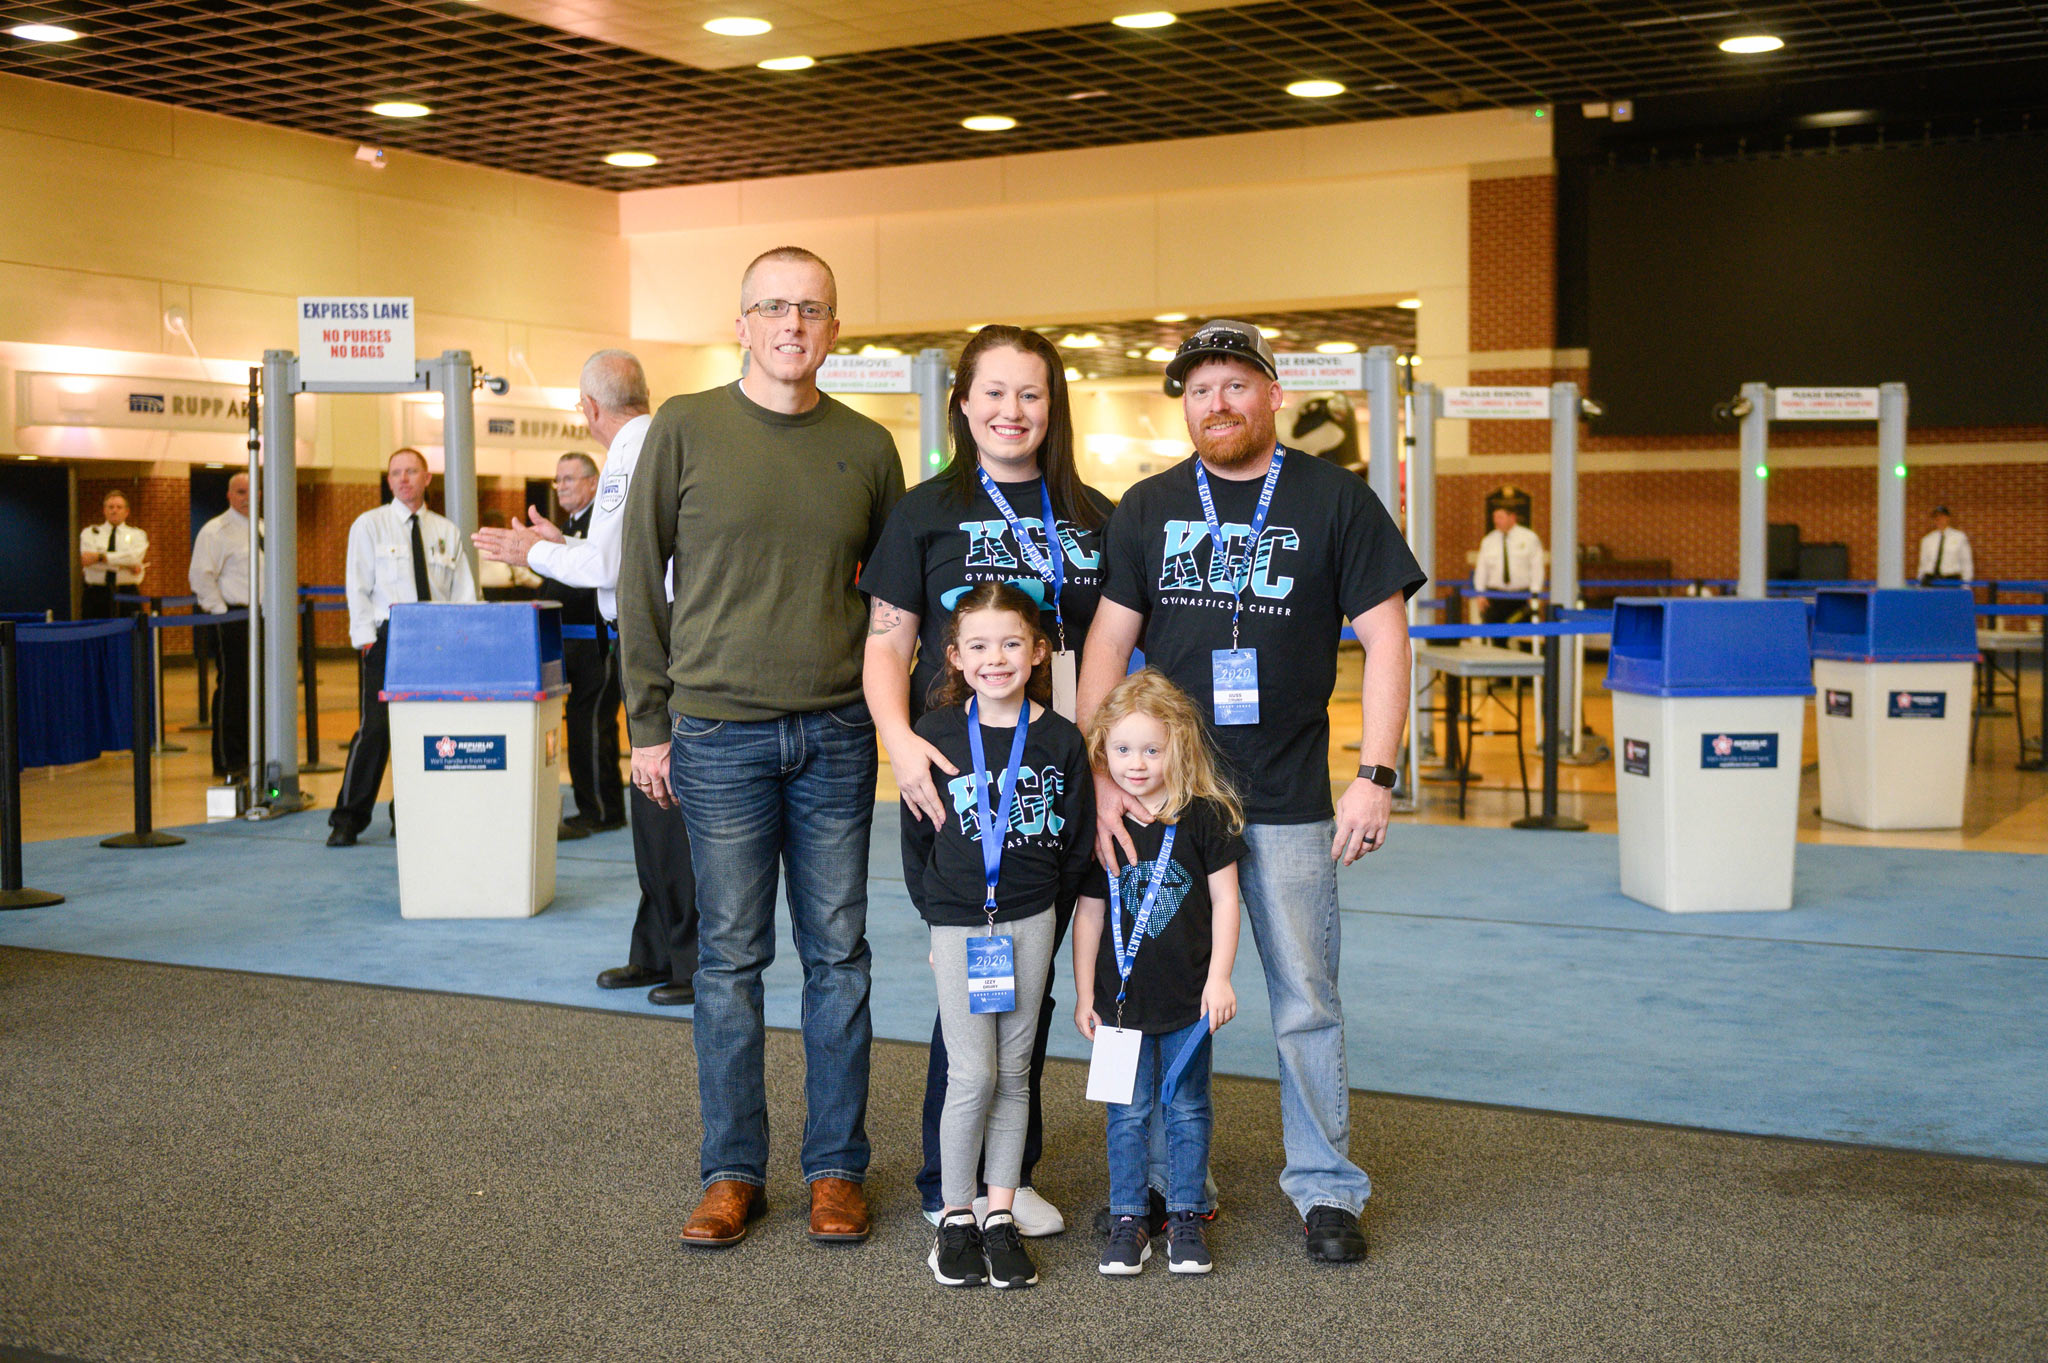 Izzy and her family pose for a photo before entering Rupp Arena for Excite Night.